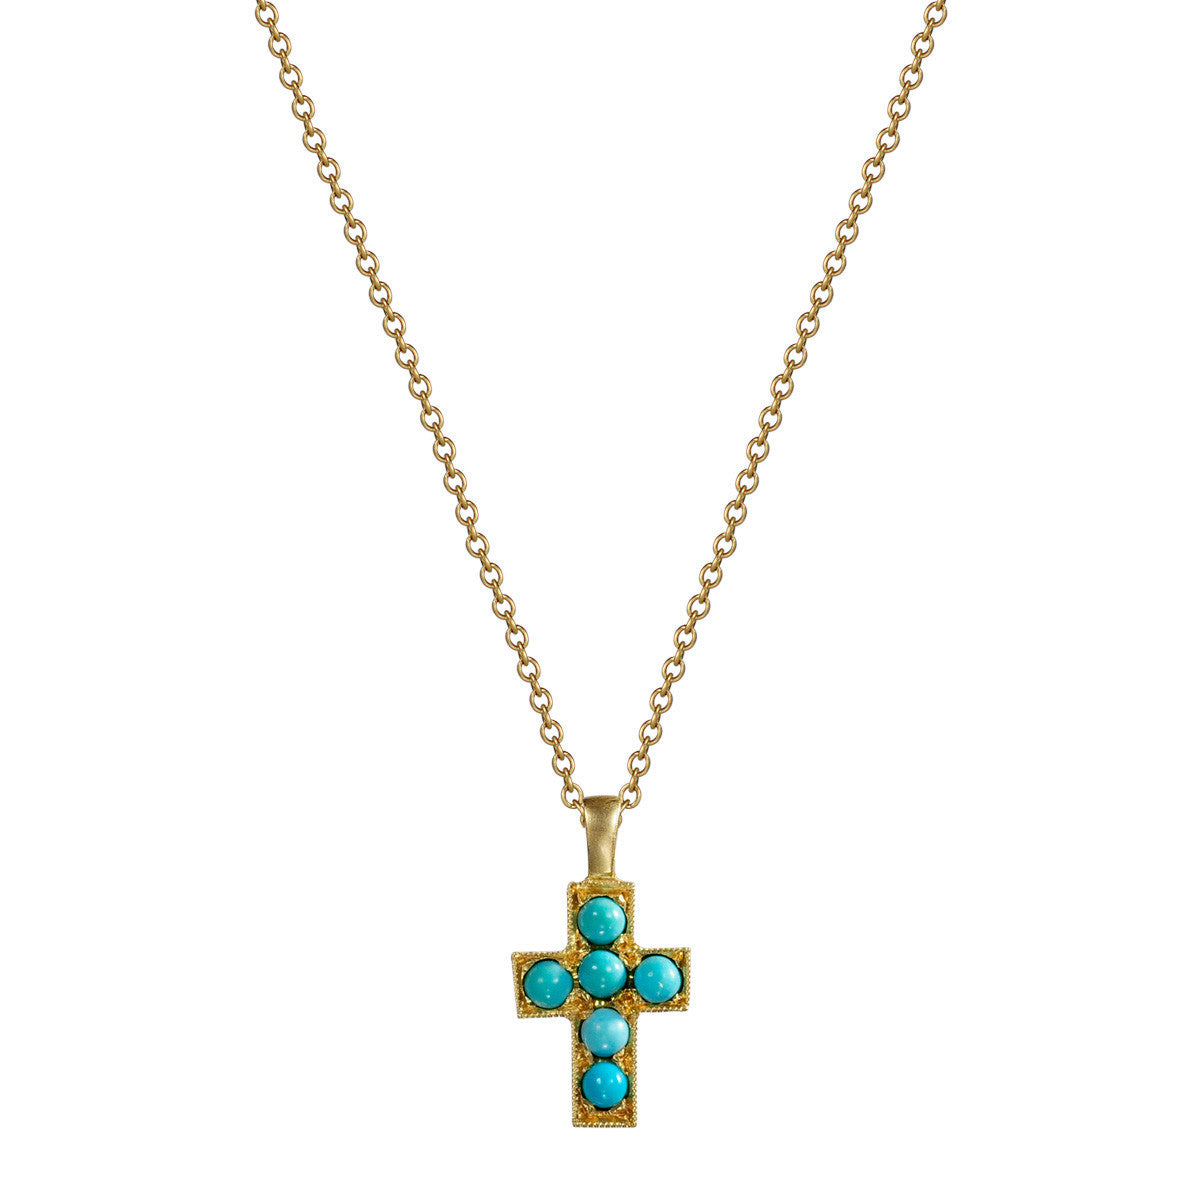 18K Gold Cross Pendant with Turquoise Stones